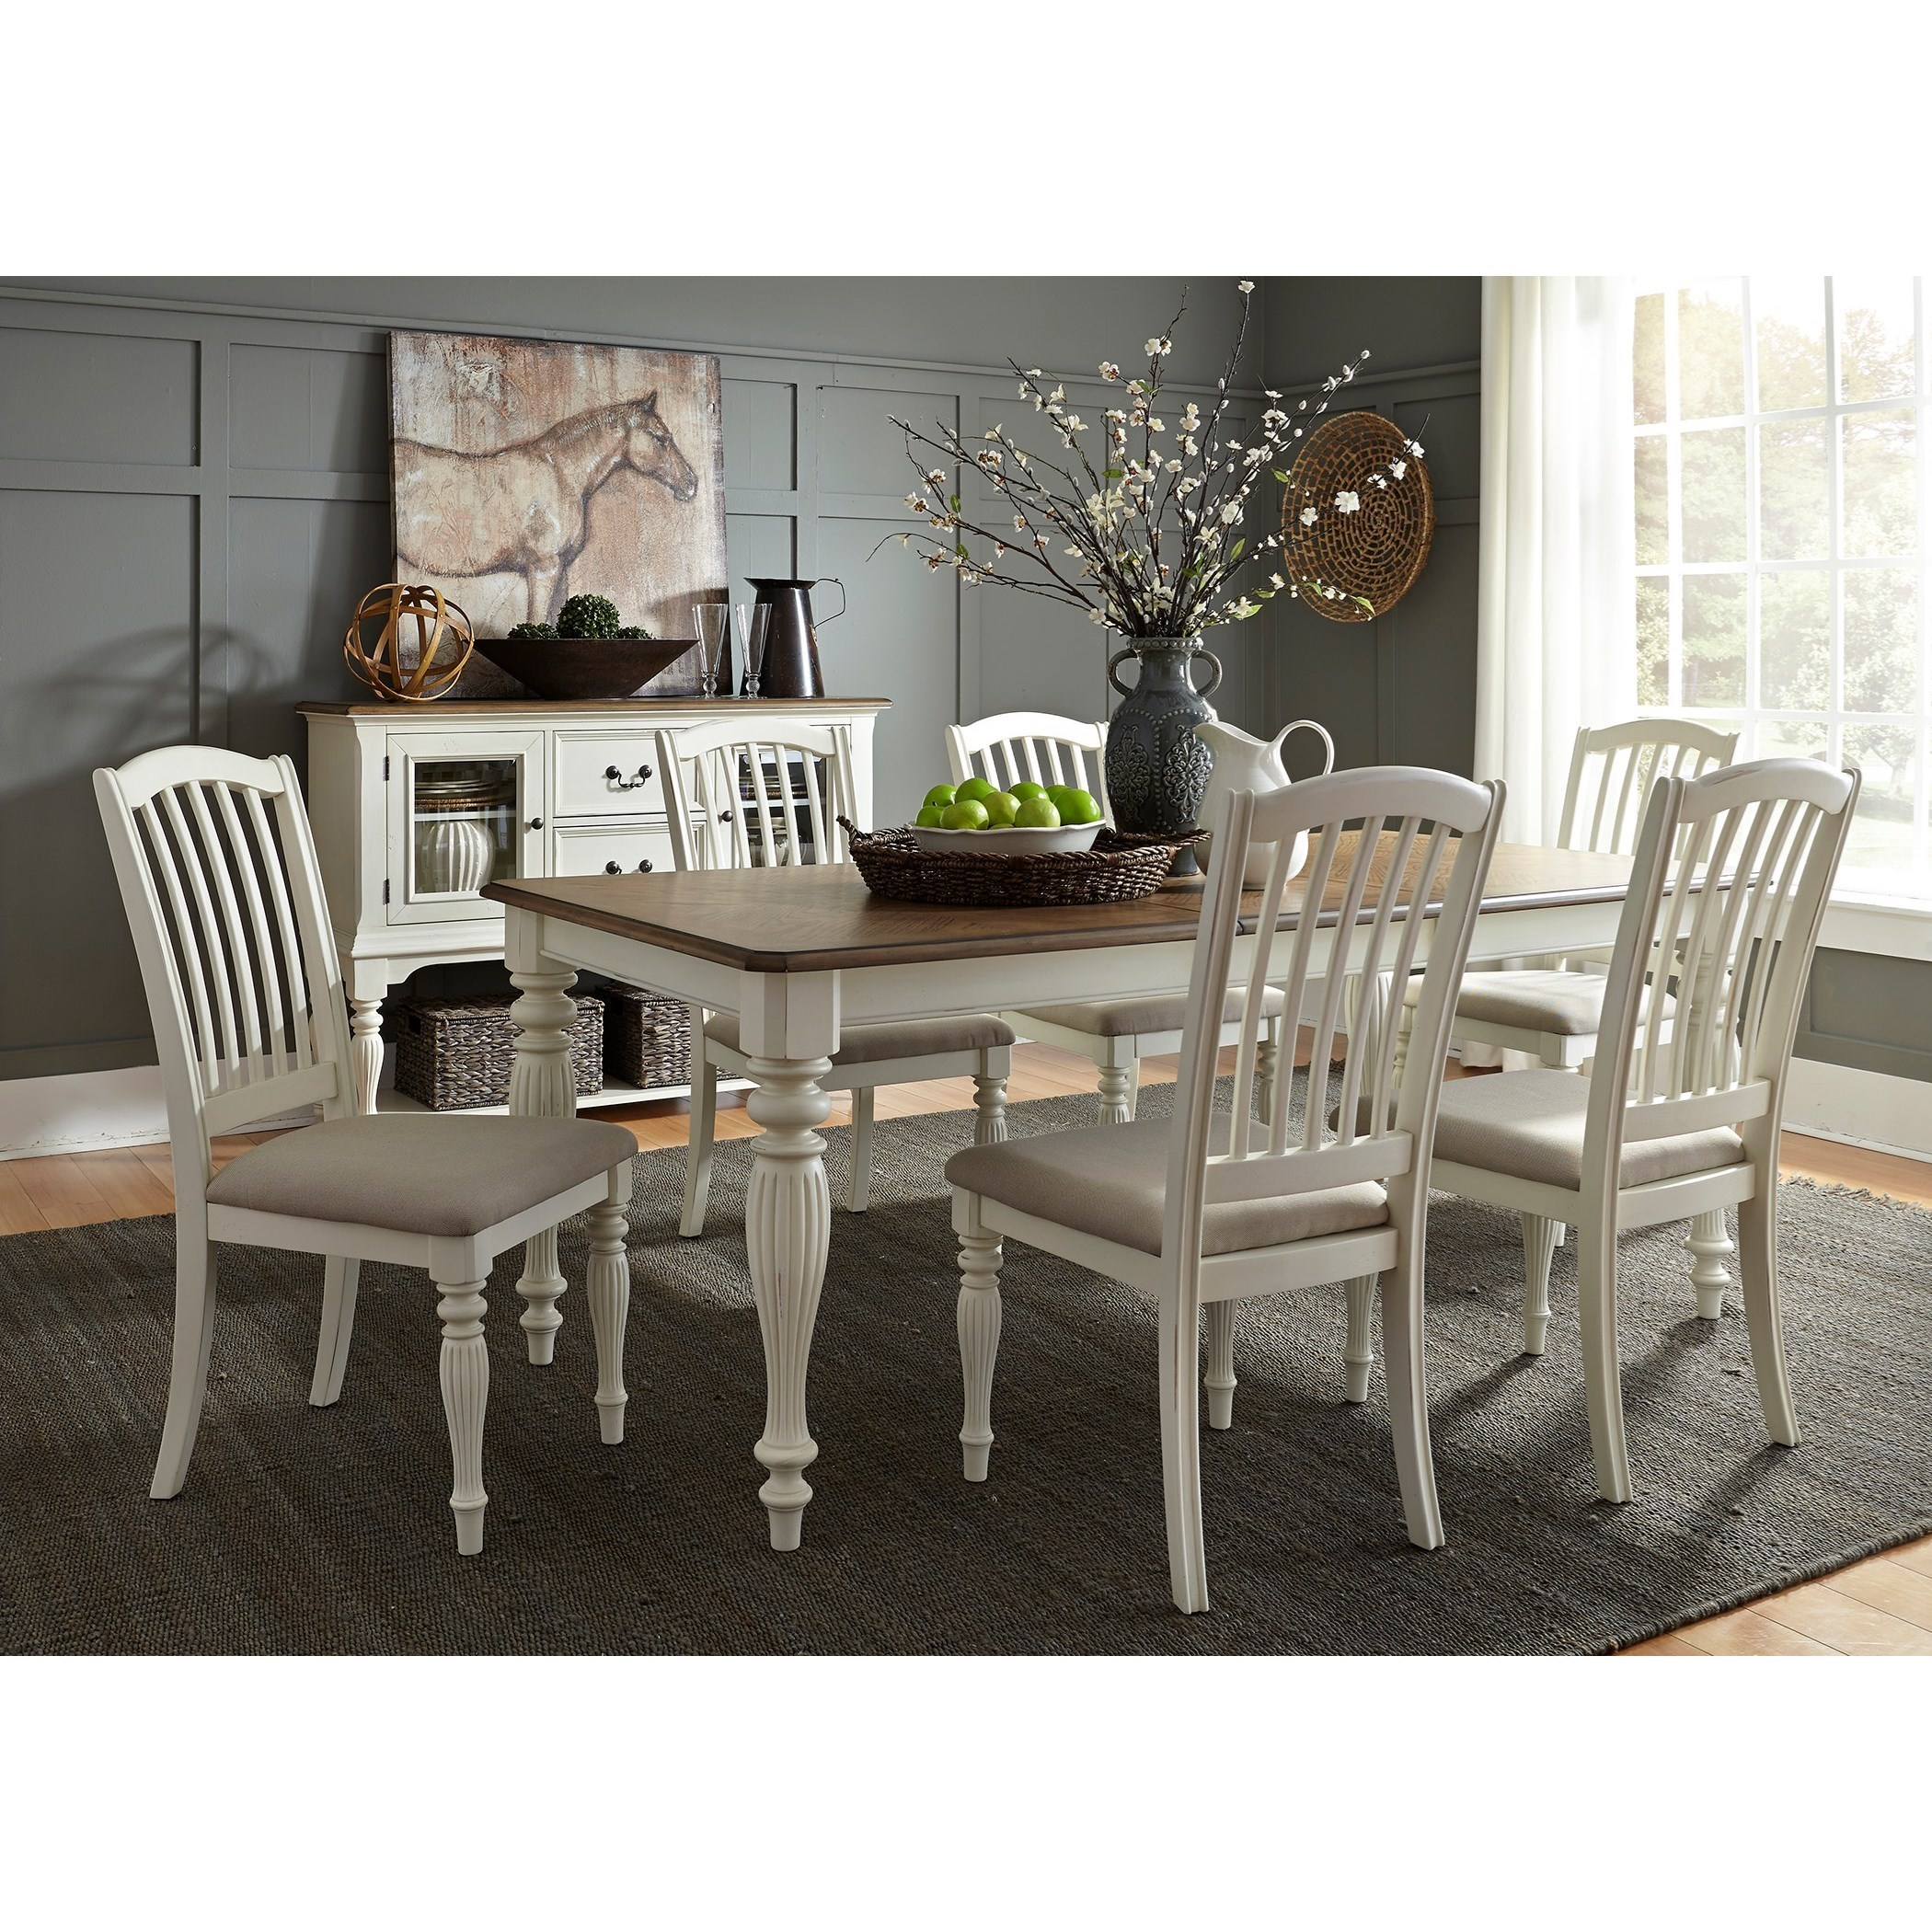 Cumberland Creek Dining Formal Dining Room Group by Liberty Furniture at Northeast Factory Direct